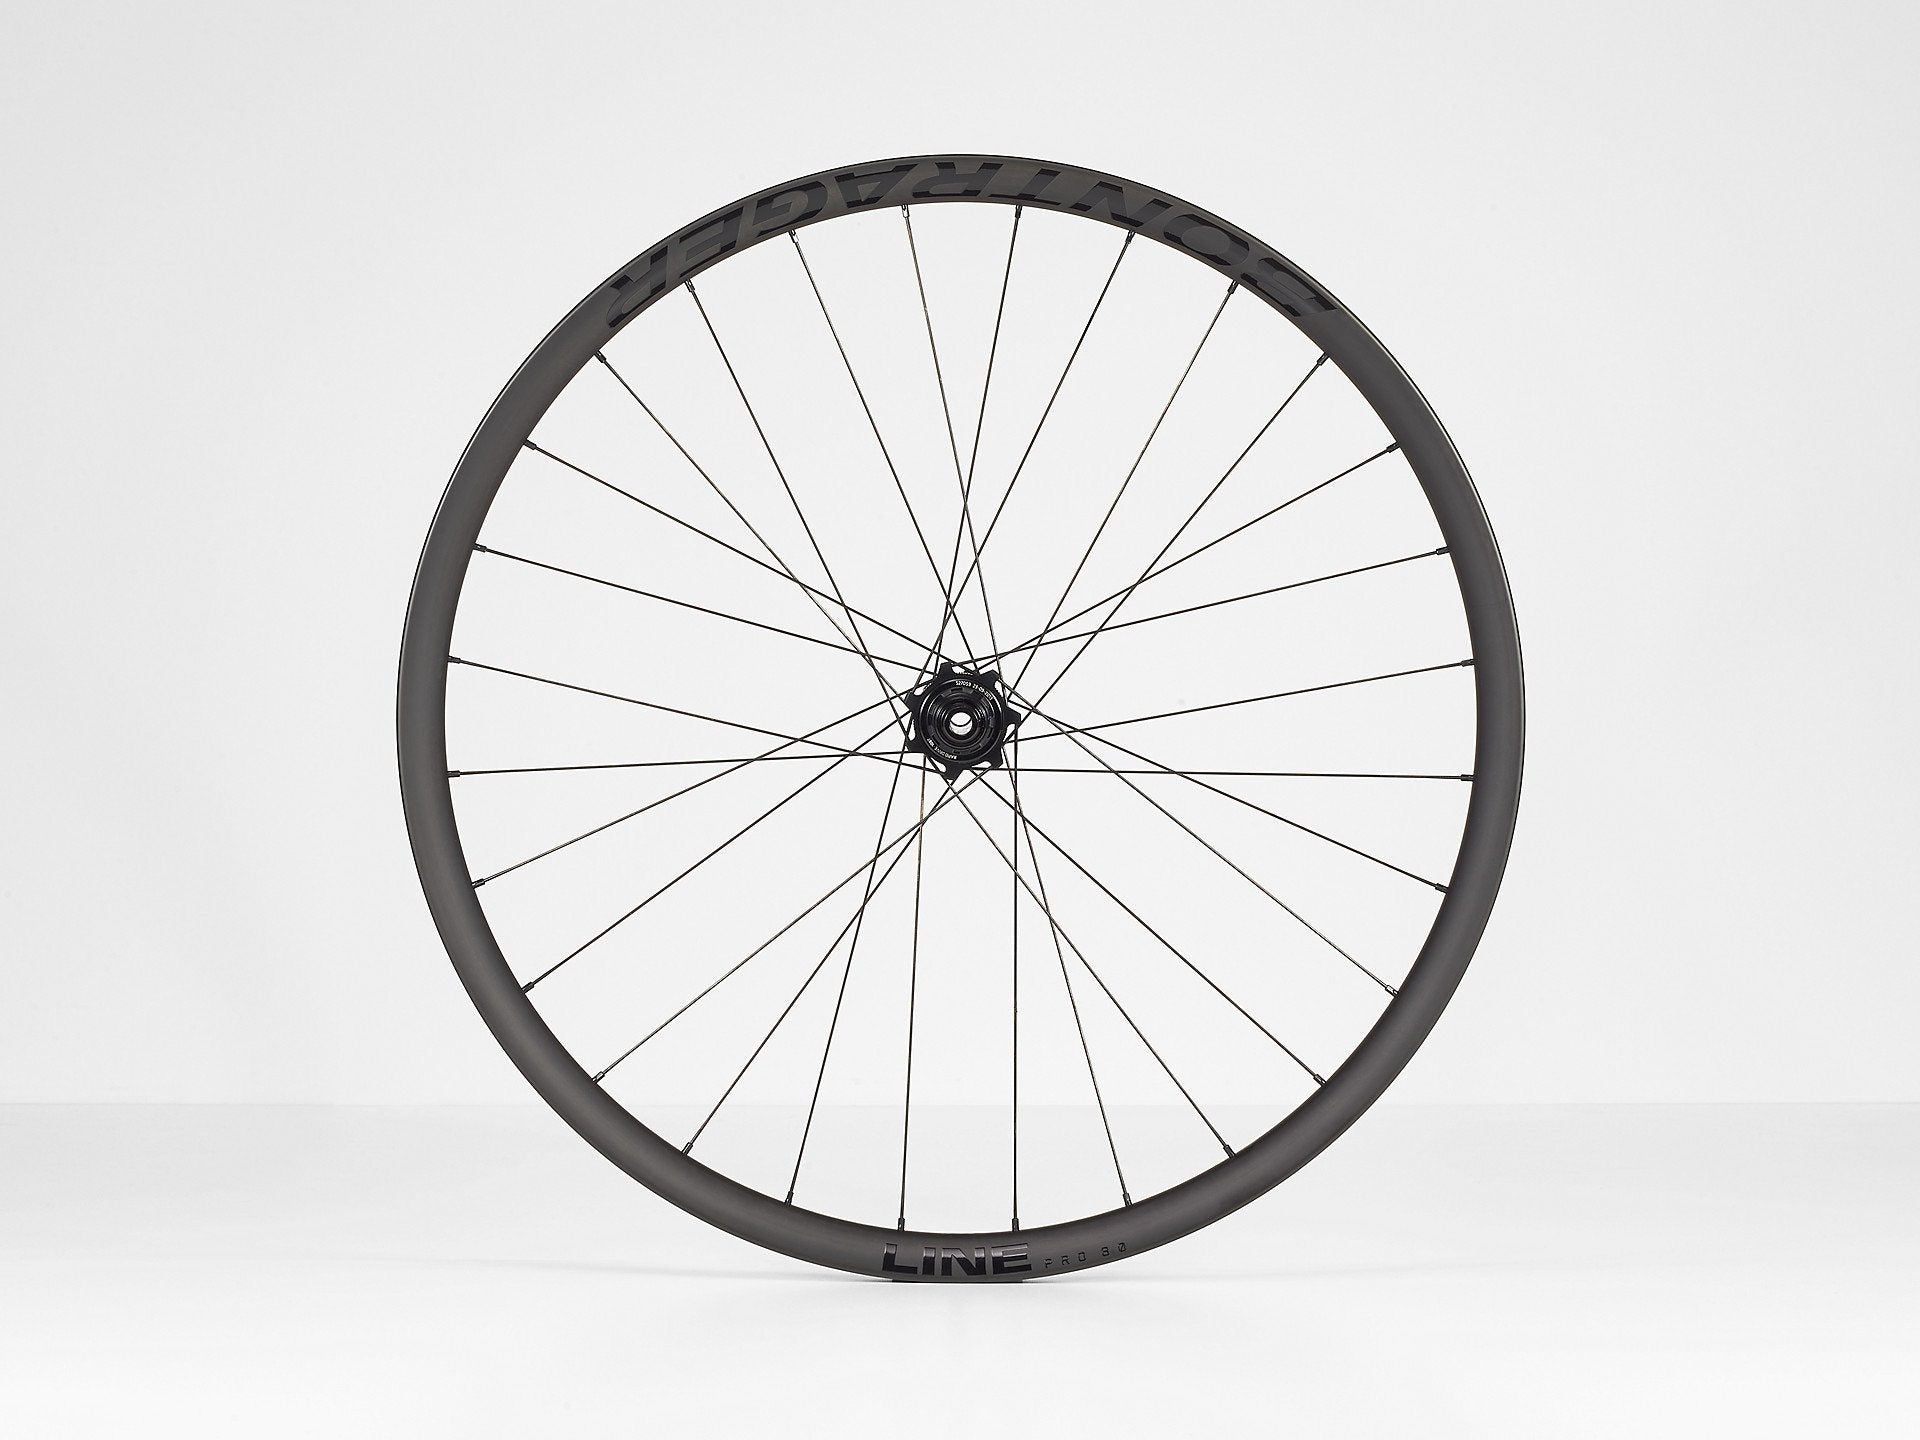 Bontrager Line Pro 30 29 Disc Wheel MY21 - Cycles Galleria Melbourne